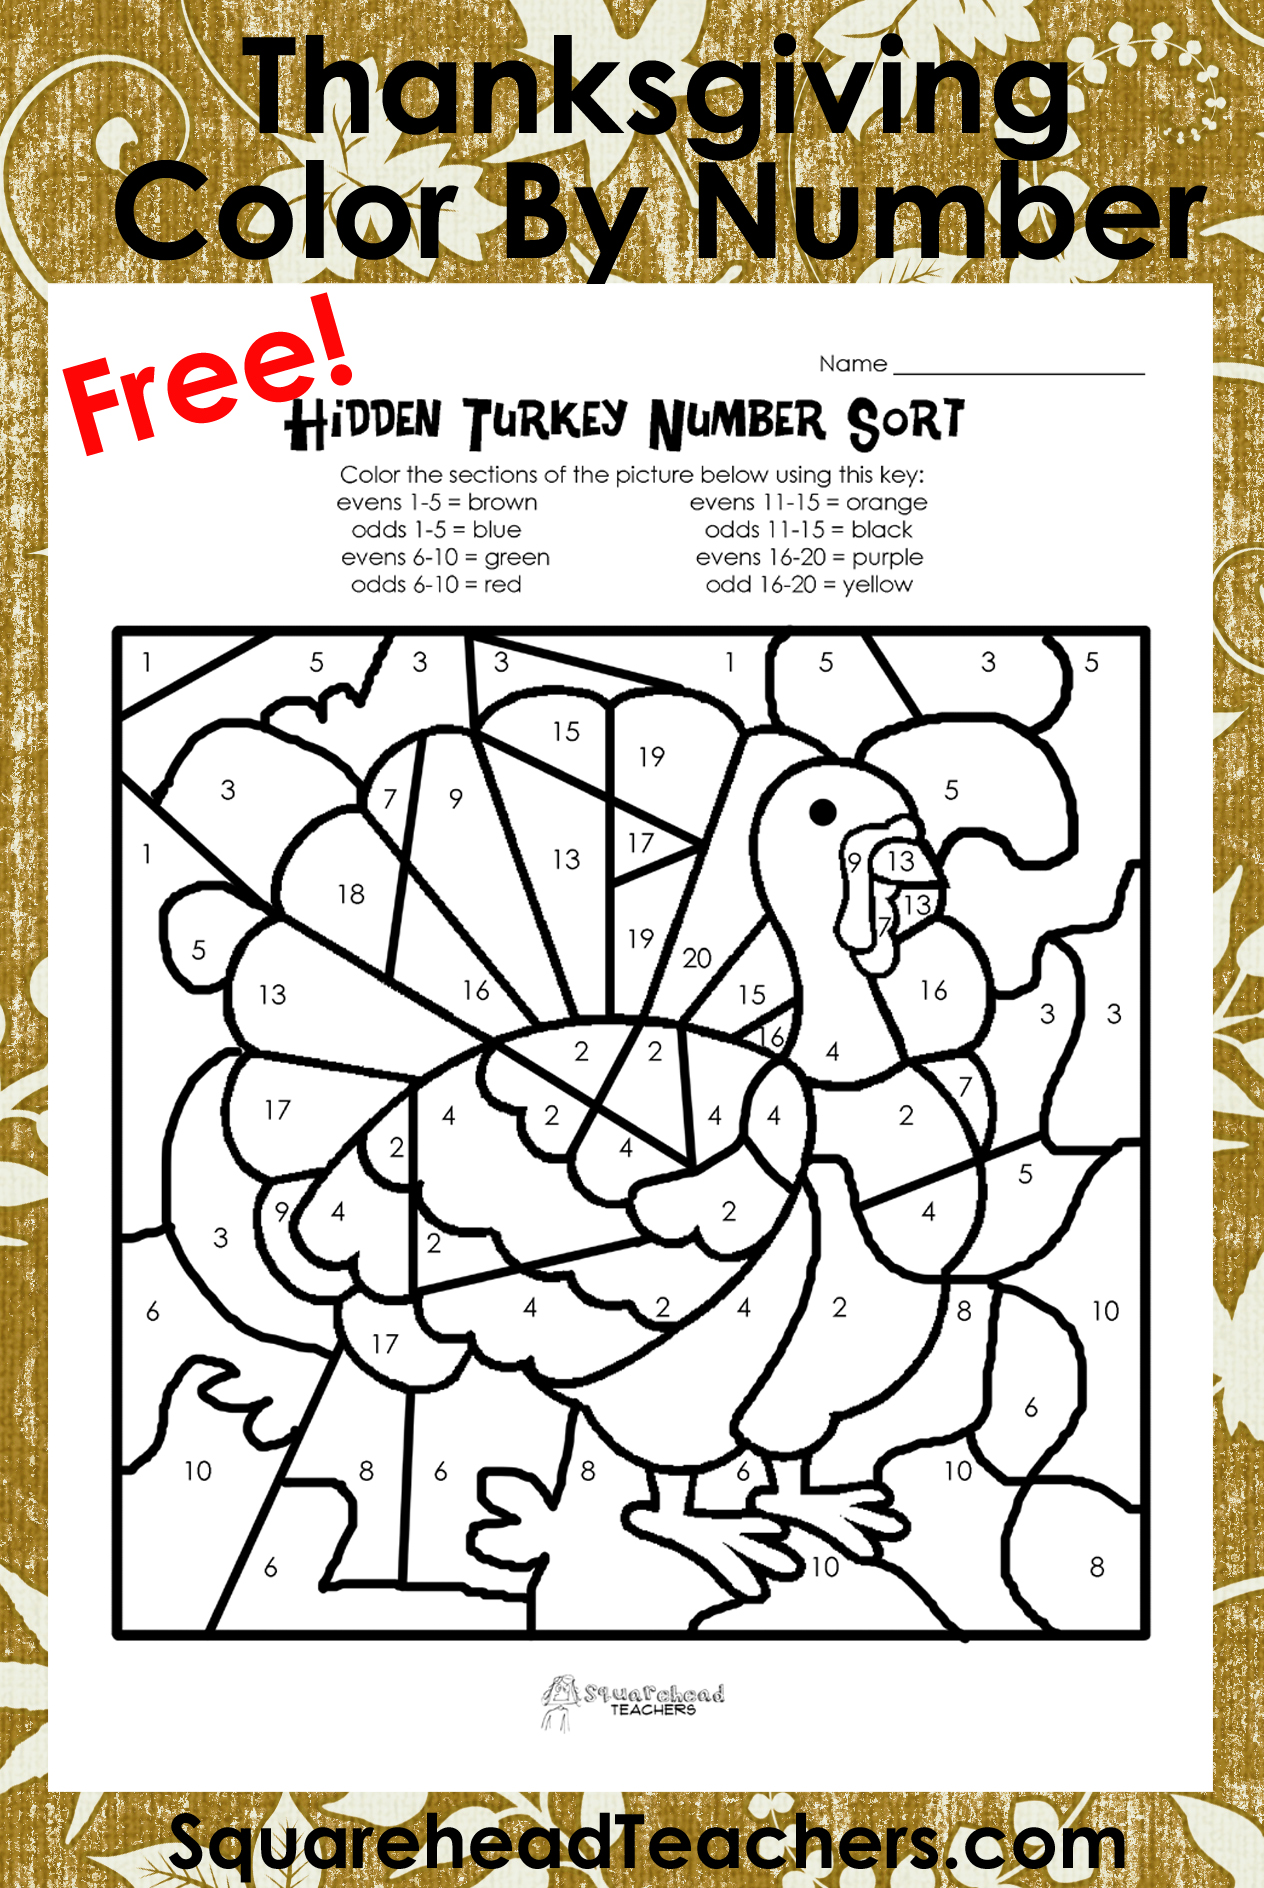 math worksheet : thanksgiving color by number simple addition  squarehead teachers : Thanksgiving Math Coloring Worksheets